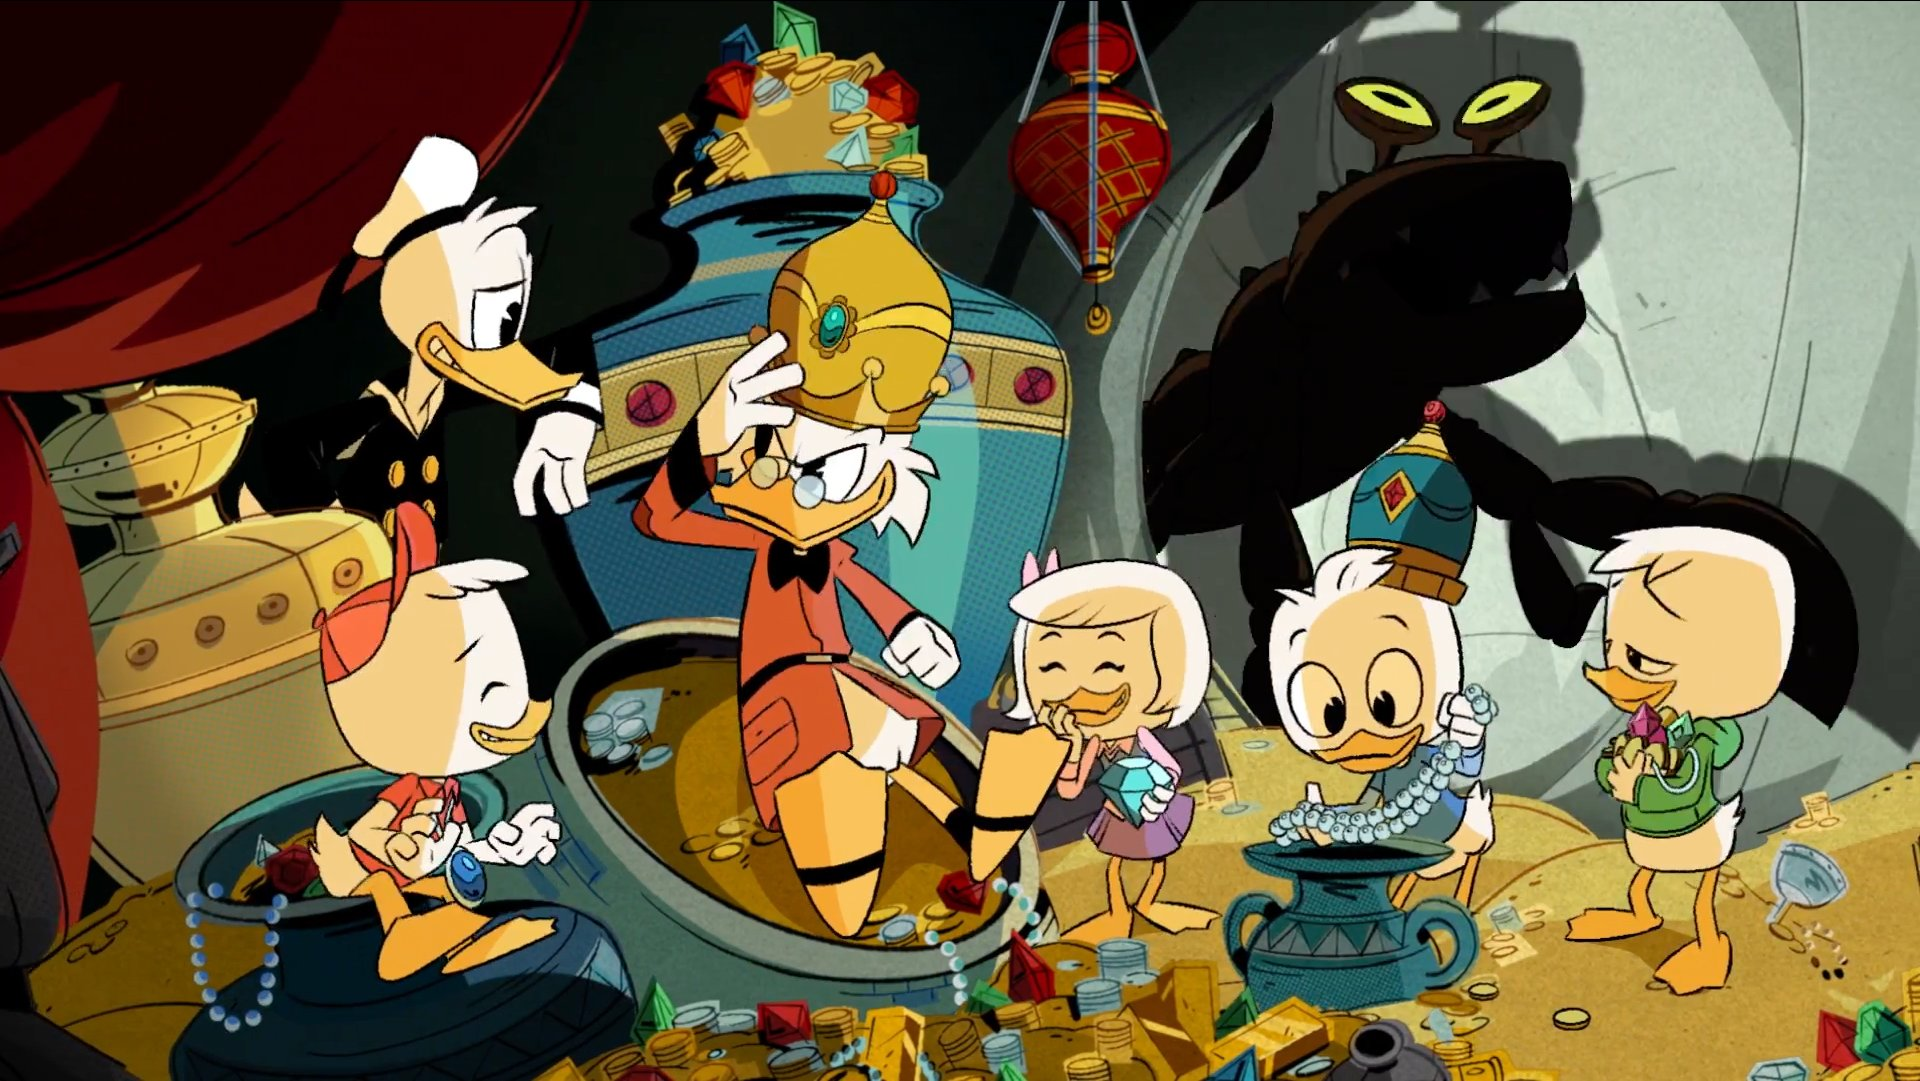 Now DuckTales is ending again